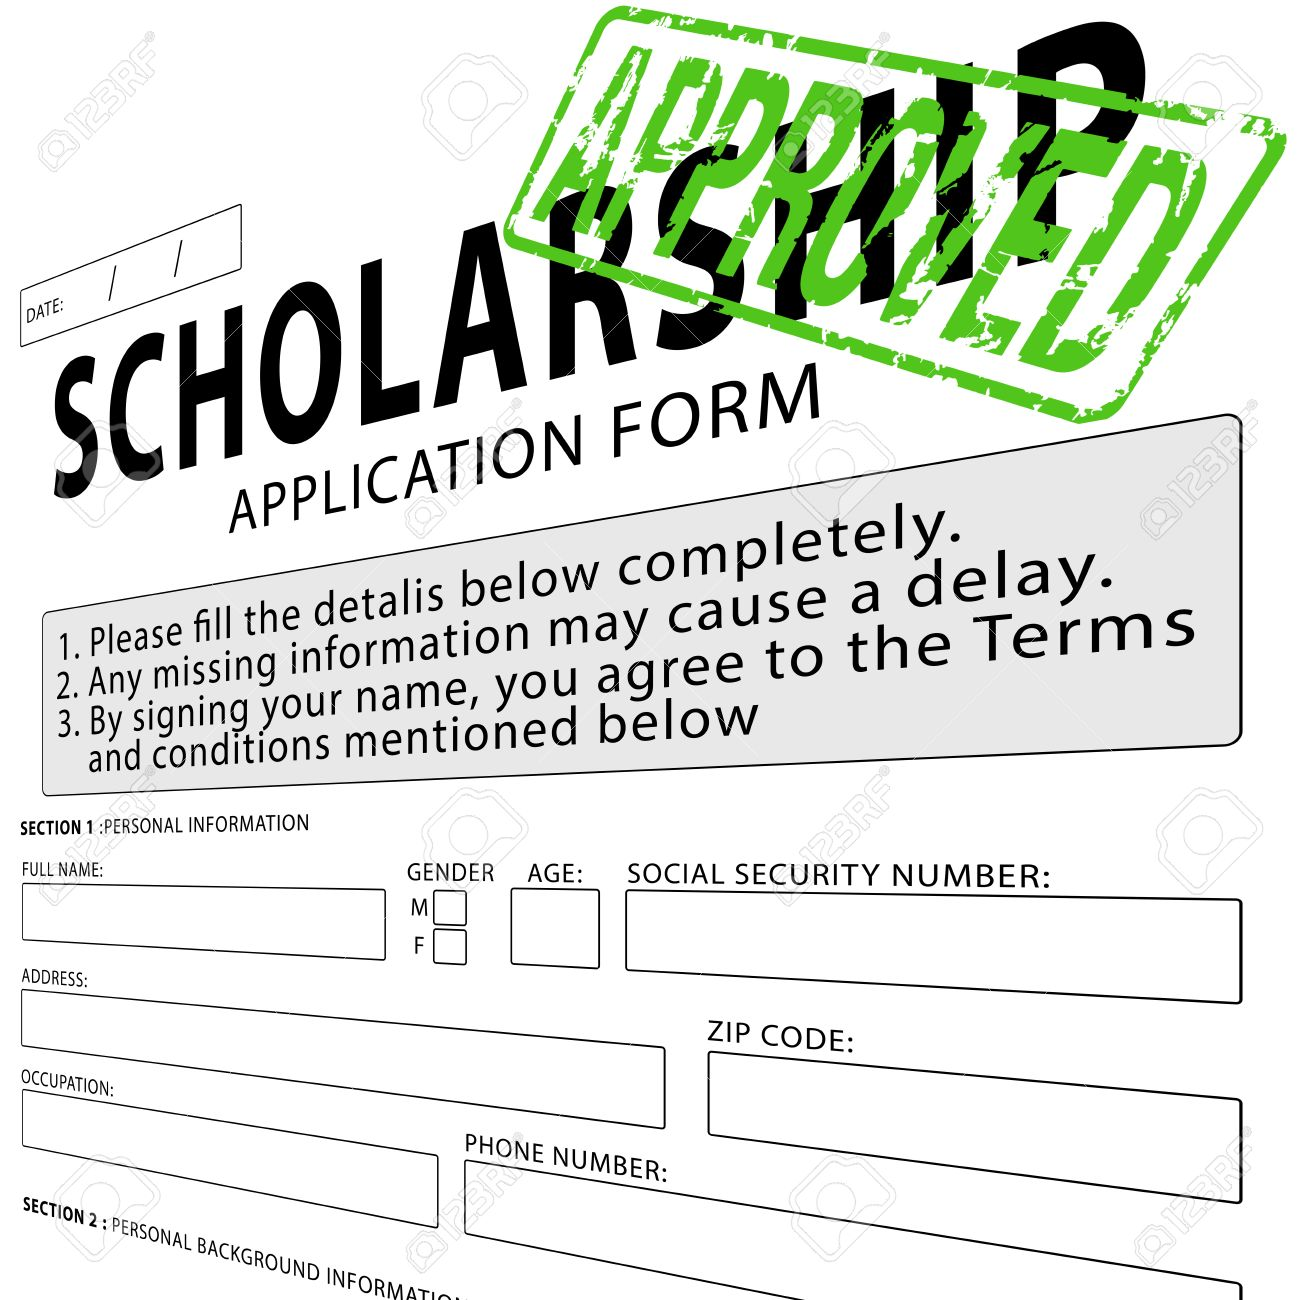 Scholarship Application Form With Green Approved Rubber Stamp – Scholarship Application Form